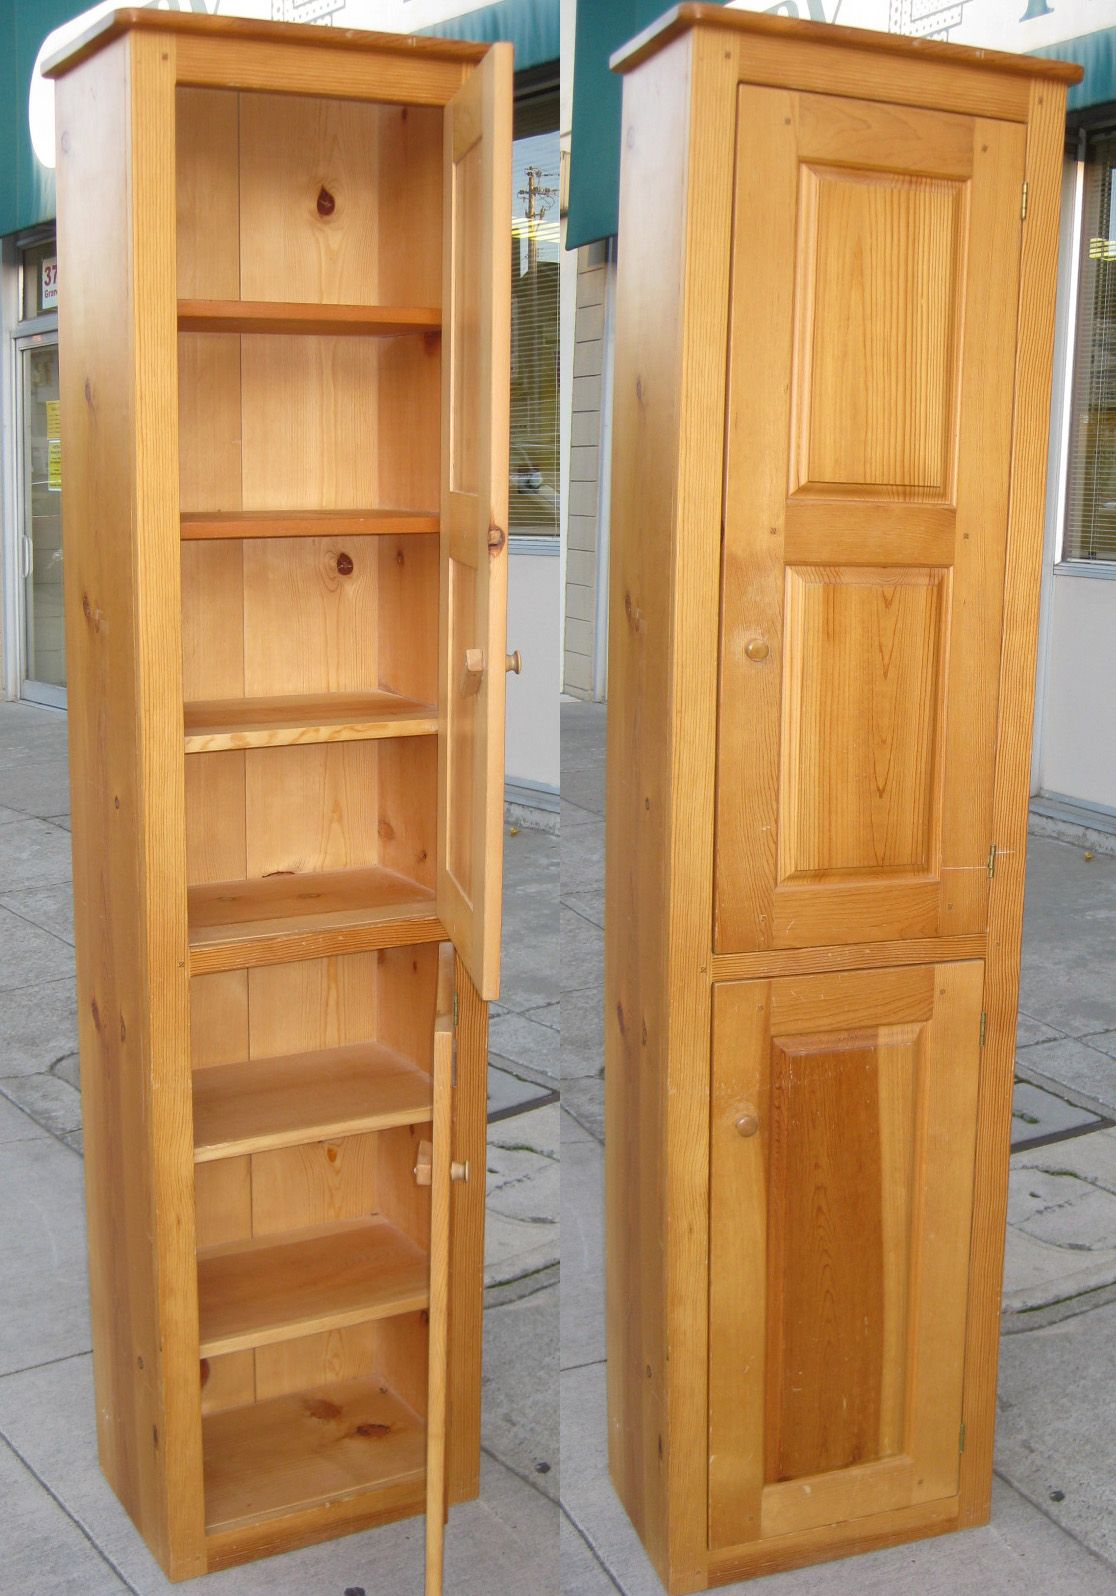 Excellent Narrow Cabinets With Doors Decor